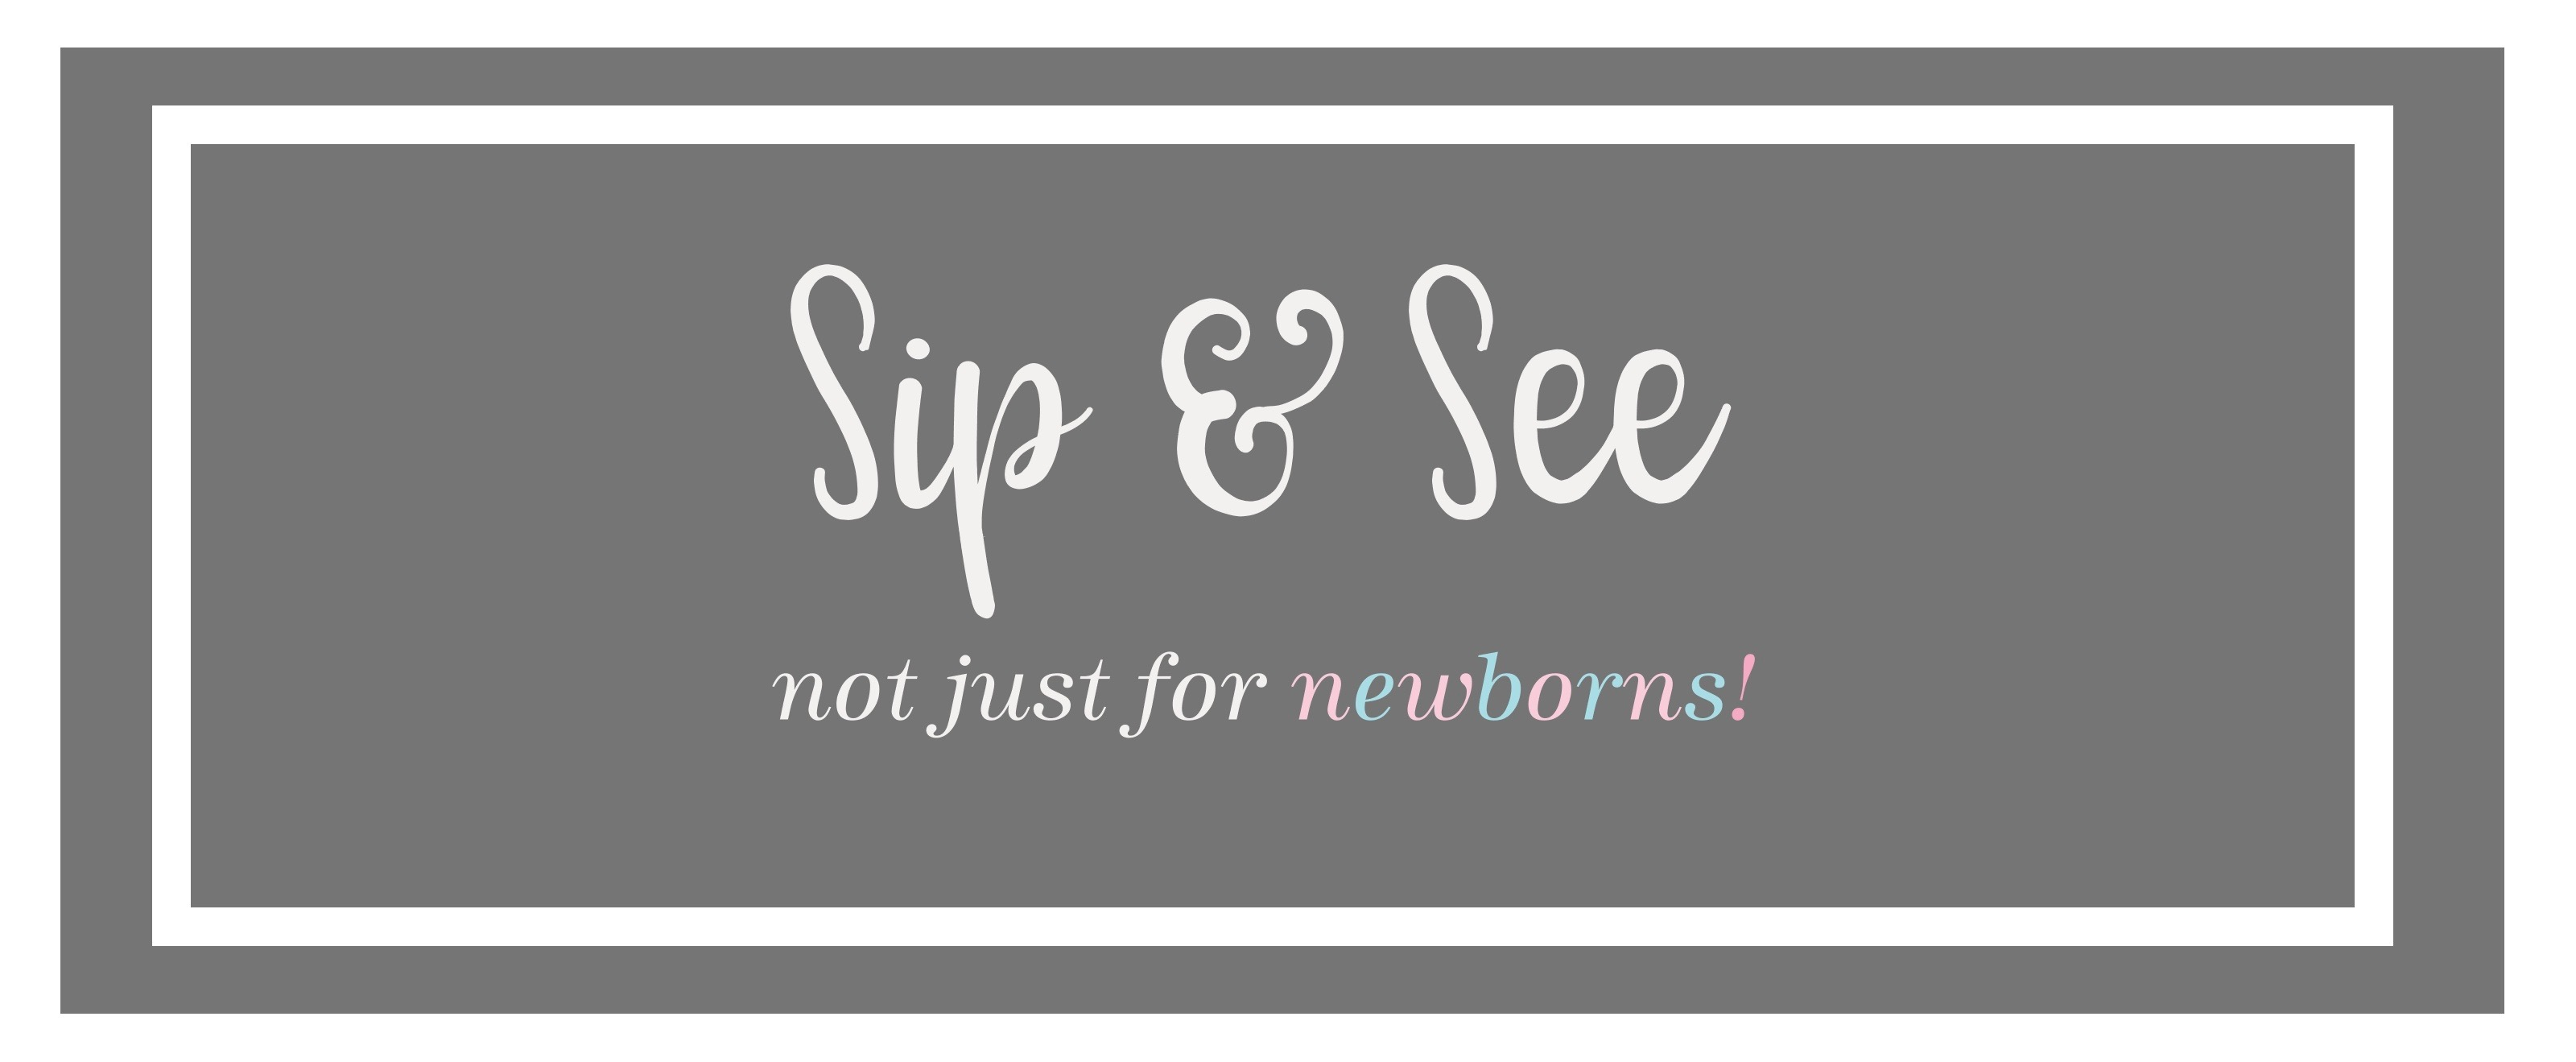 Sip & See featured image-001 2